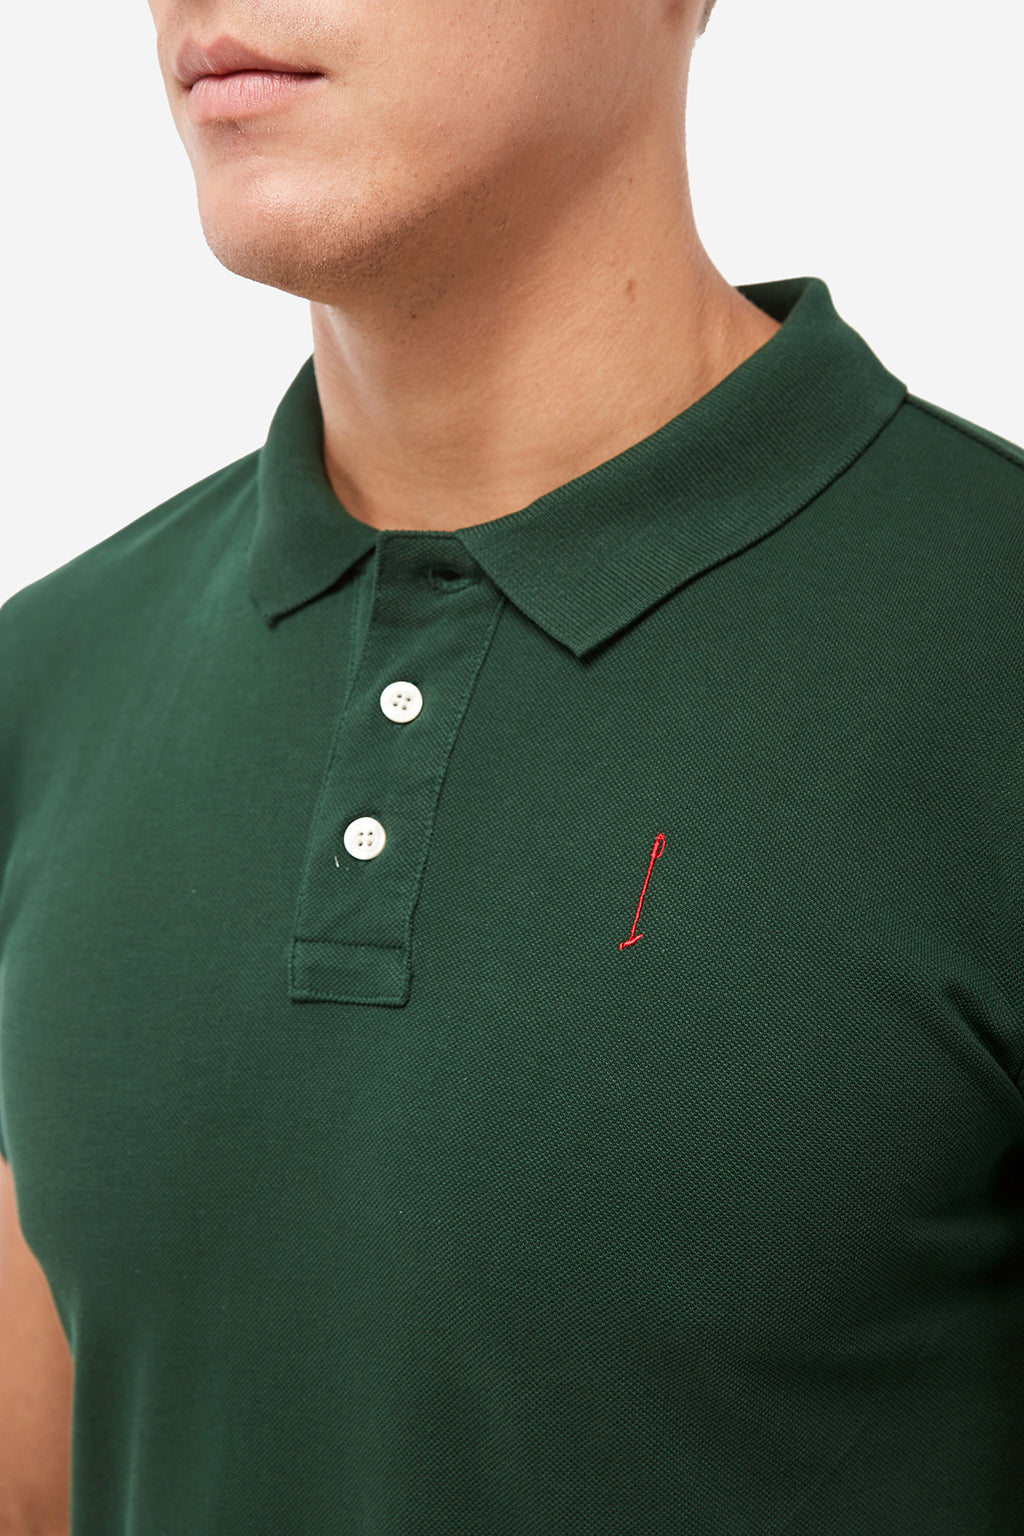 Green Knot polo shirt